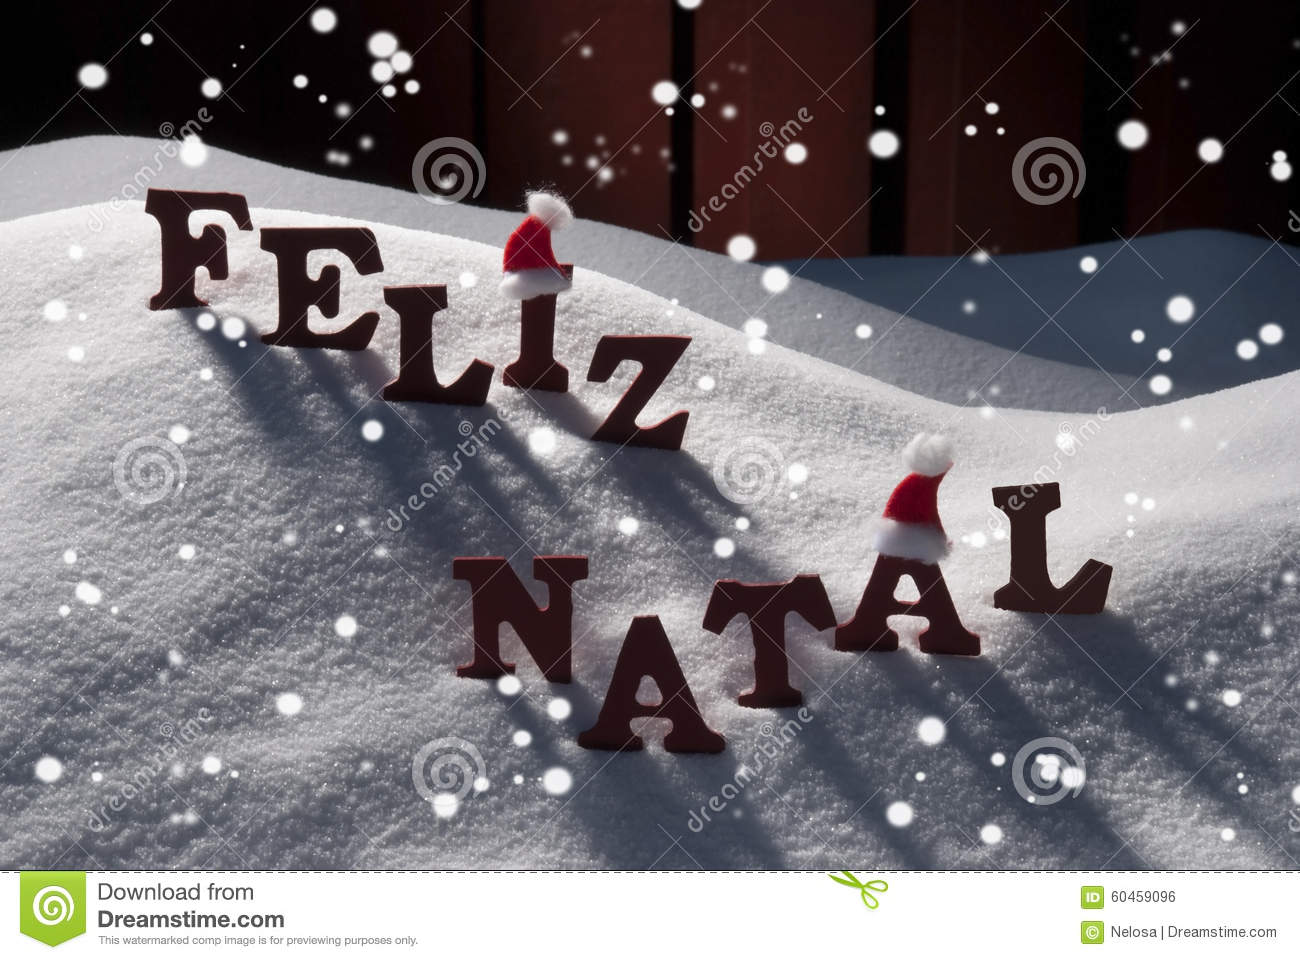 bf68d900c004e Red Letters With Santa Hat On White Snow With Snowflakes As Christmas Card.  Portuguese Text Or Word Feliz Natale Means Merry Christmas.